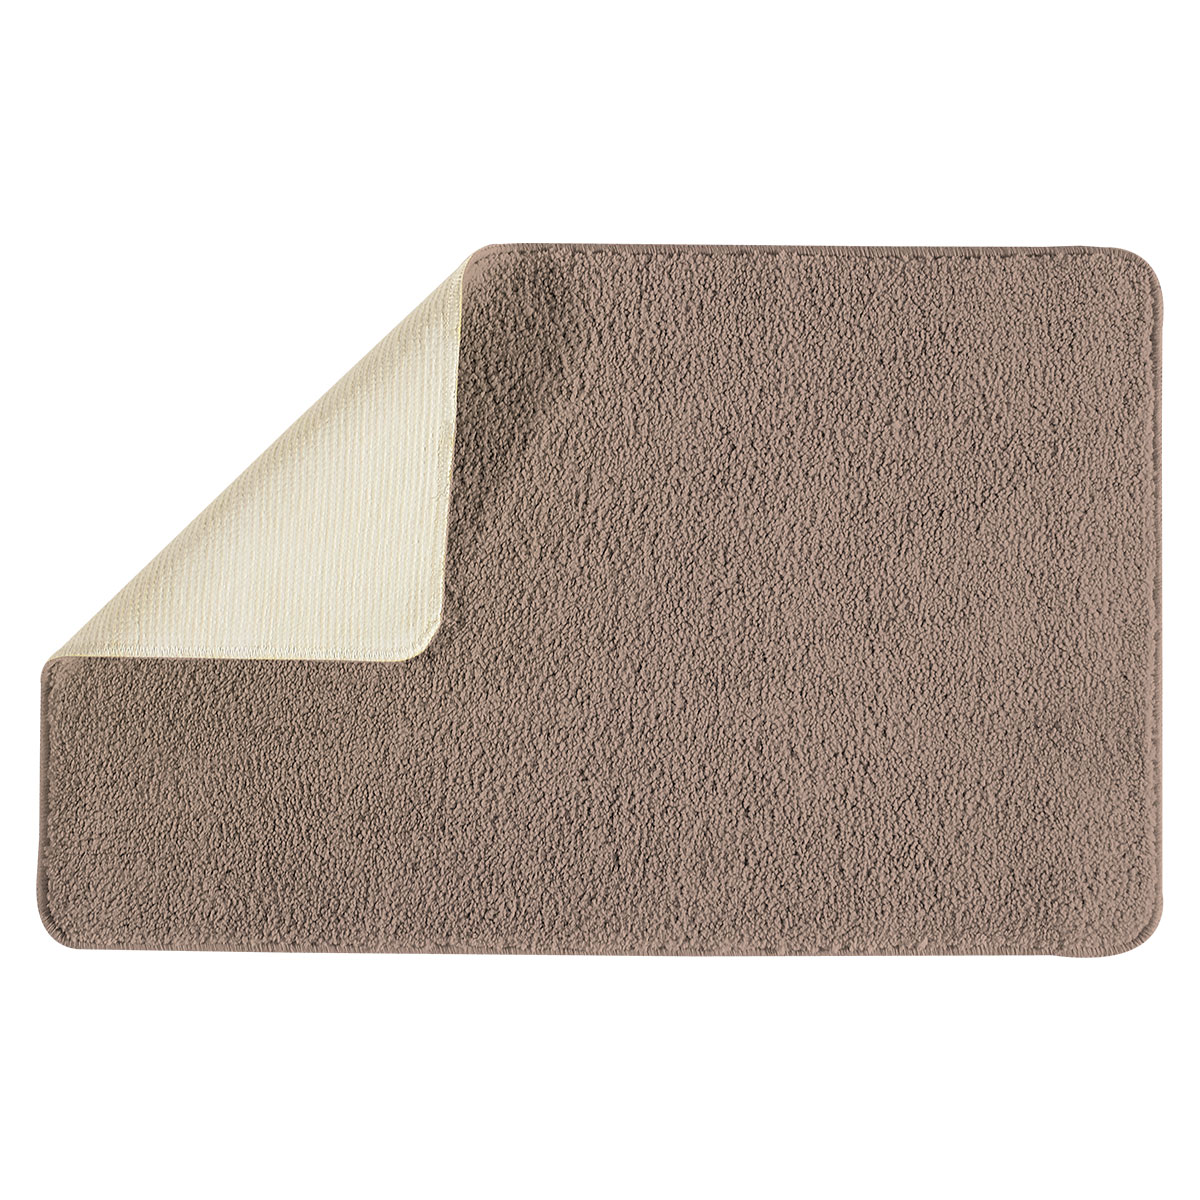 tapis de bain polyn sie acrylique marron taupe ebay. Black Bedroom Furniture Sets. Home Design Ideas